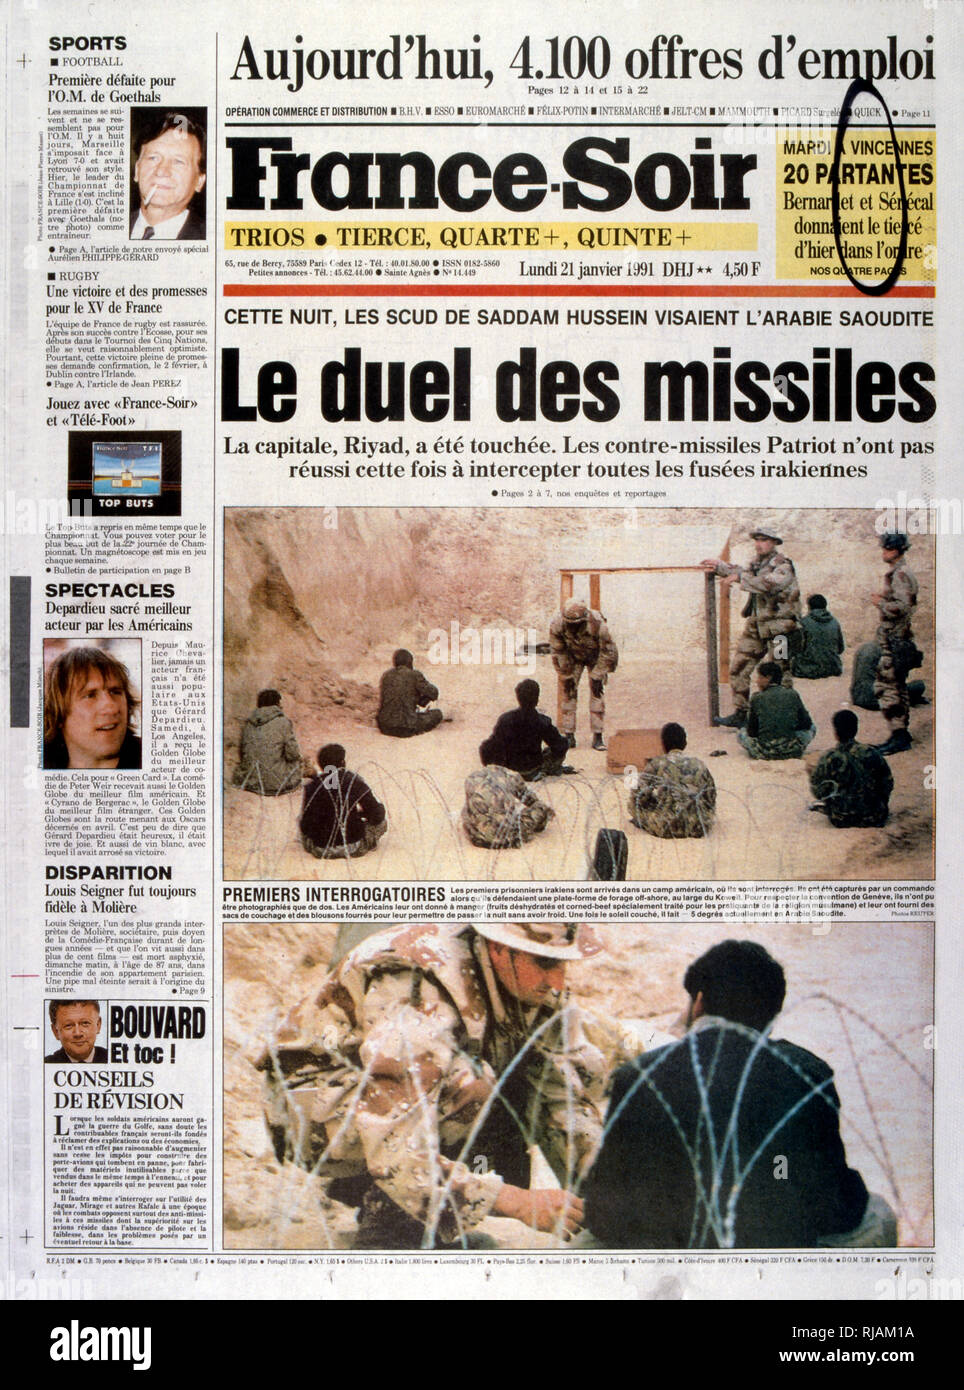 Headline in 'France-Soir' a French newspaper, 21st January 1991, concerning escalating action in the Gulf War (2 August 1990 - 28 February 1991). codenamed Operation Desert Shield and Operation Desert Storm, the war waged by coalition forces from 35 nations led by the United States against Iraq in response to Iraq's invasion and annexation of Kuwait. - Stock Image